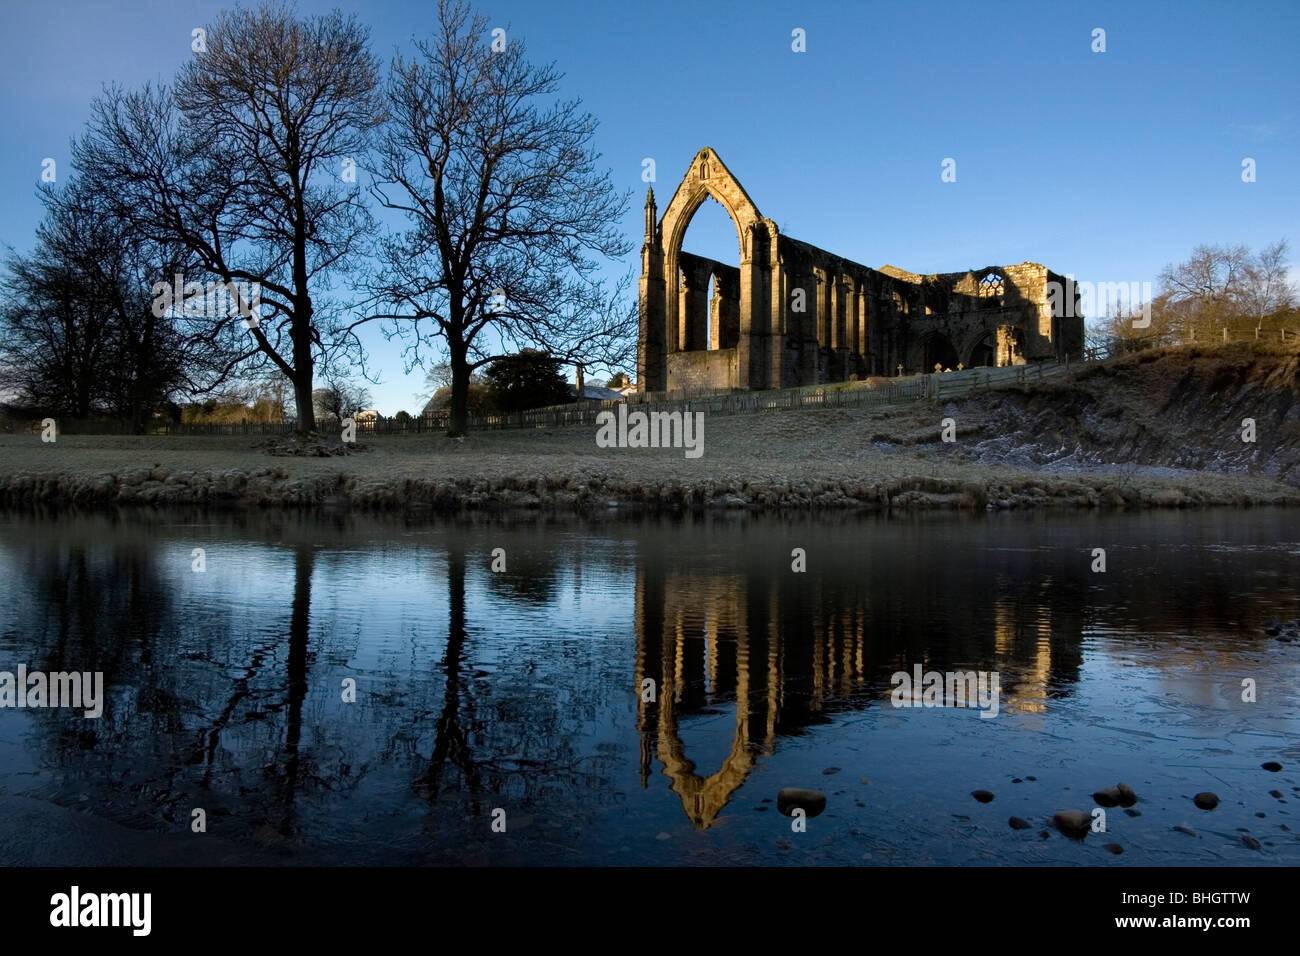 The ruins of Bolton Abbey (Bolton Priory) in Wharfedale in the Yorkshire Dales national park, england, uk - Stock Image